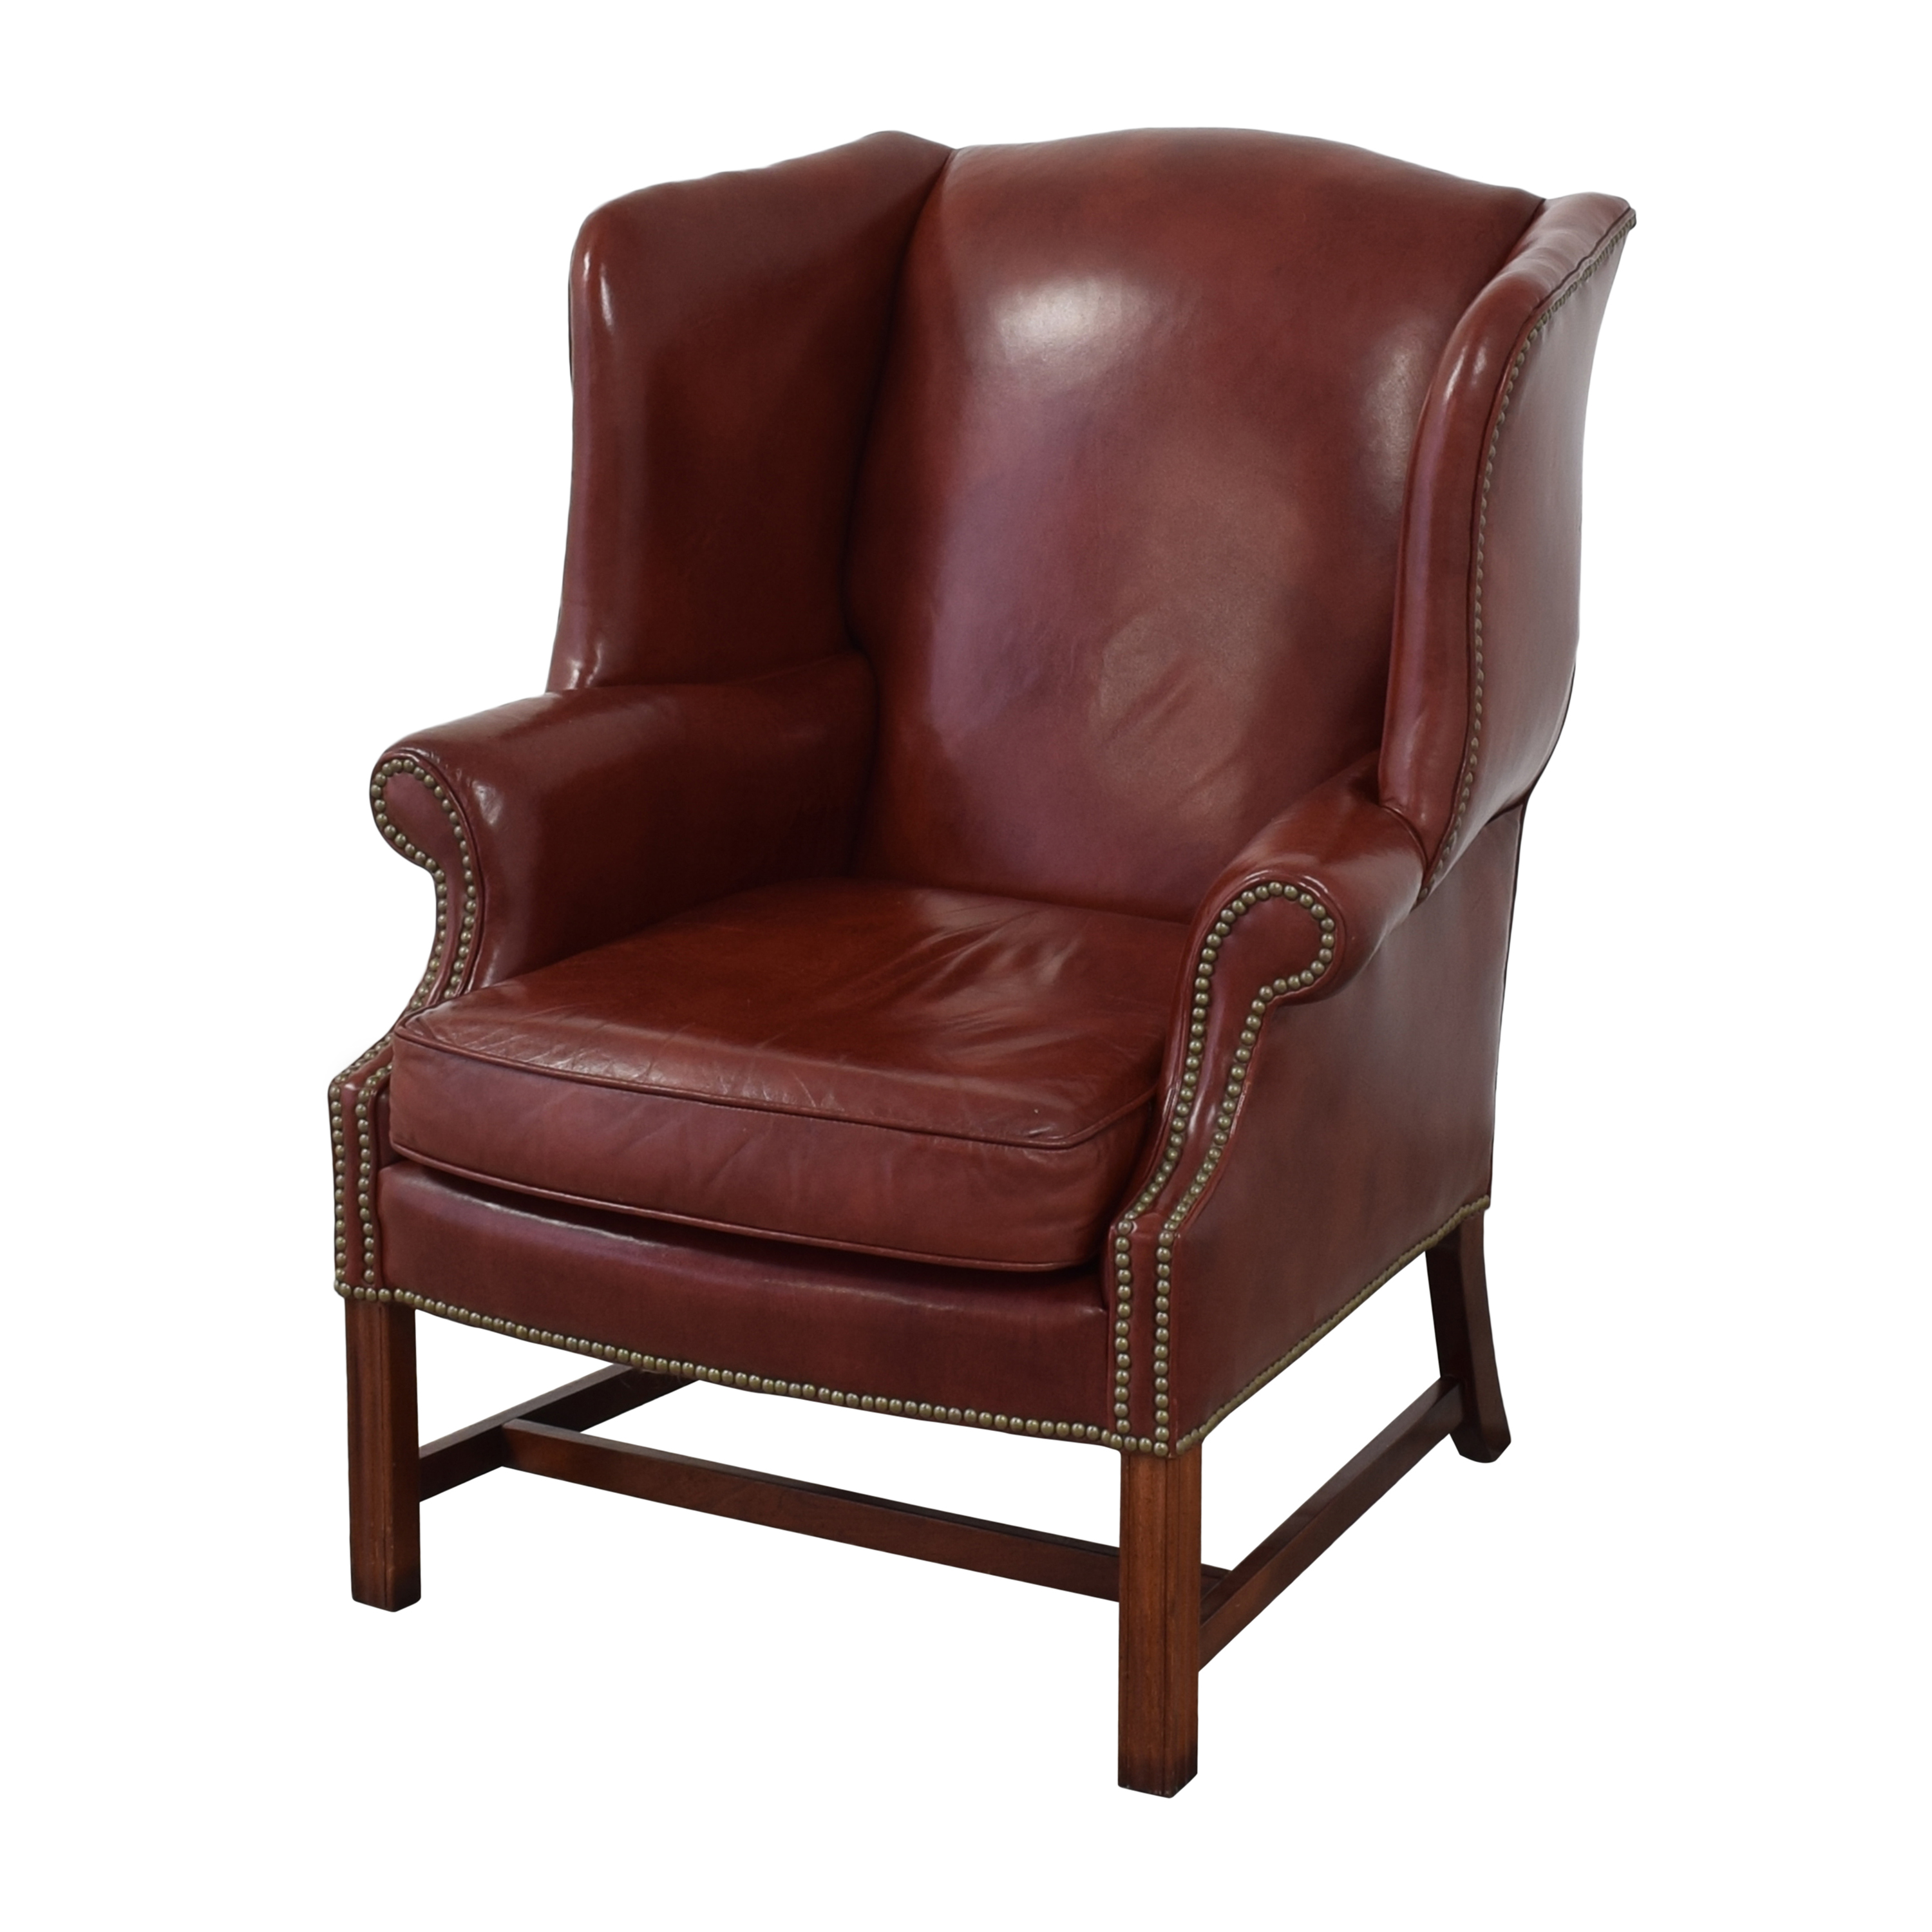 Classic Leather Classic Leather George III Wing Chair Accent Chairs